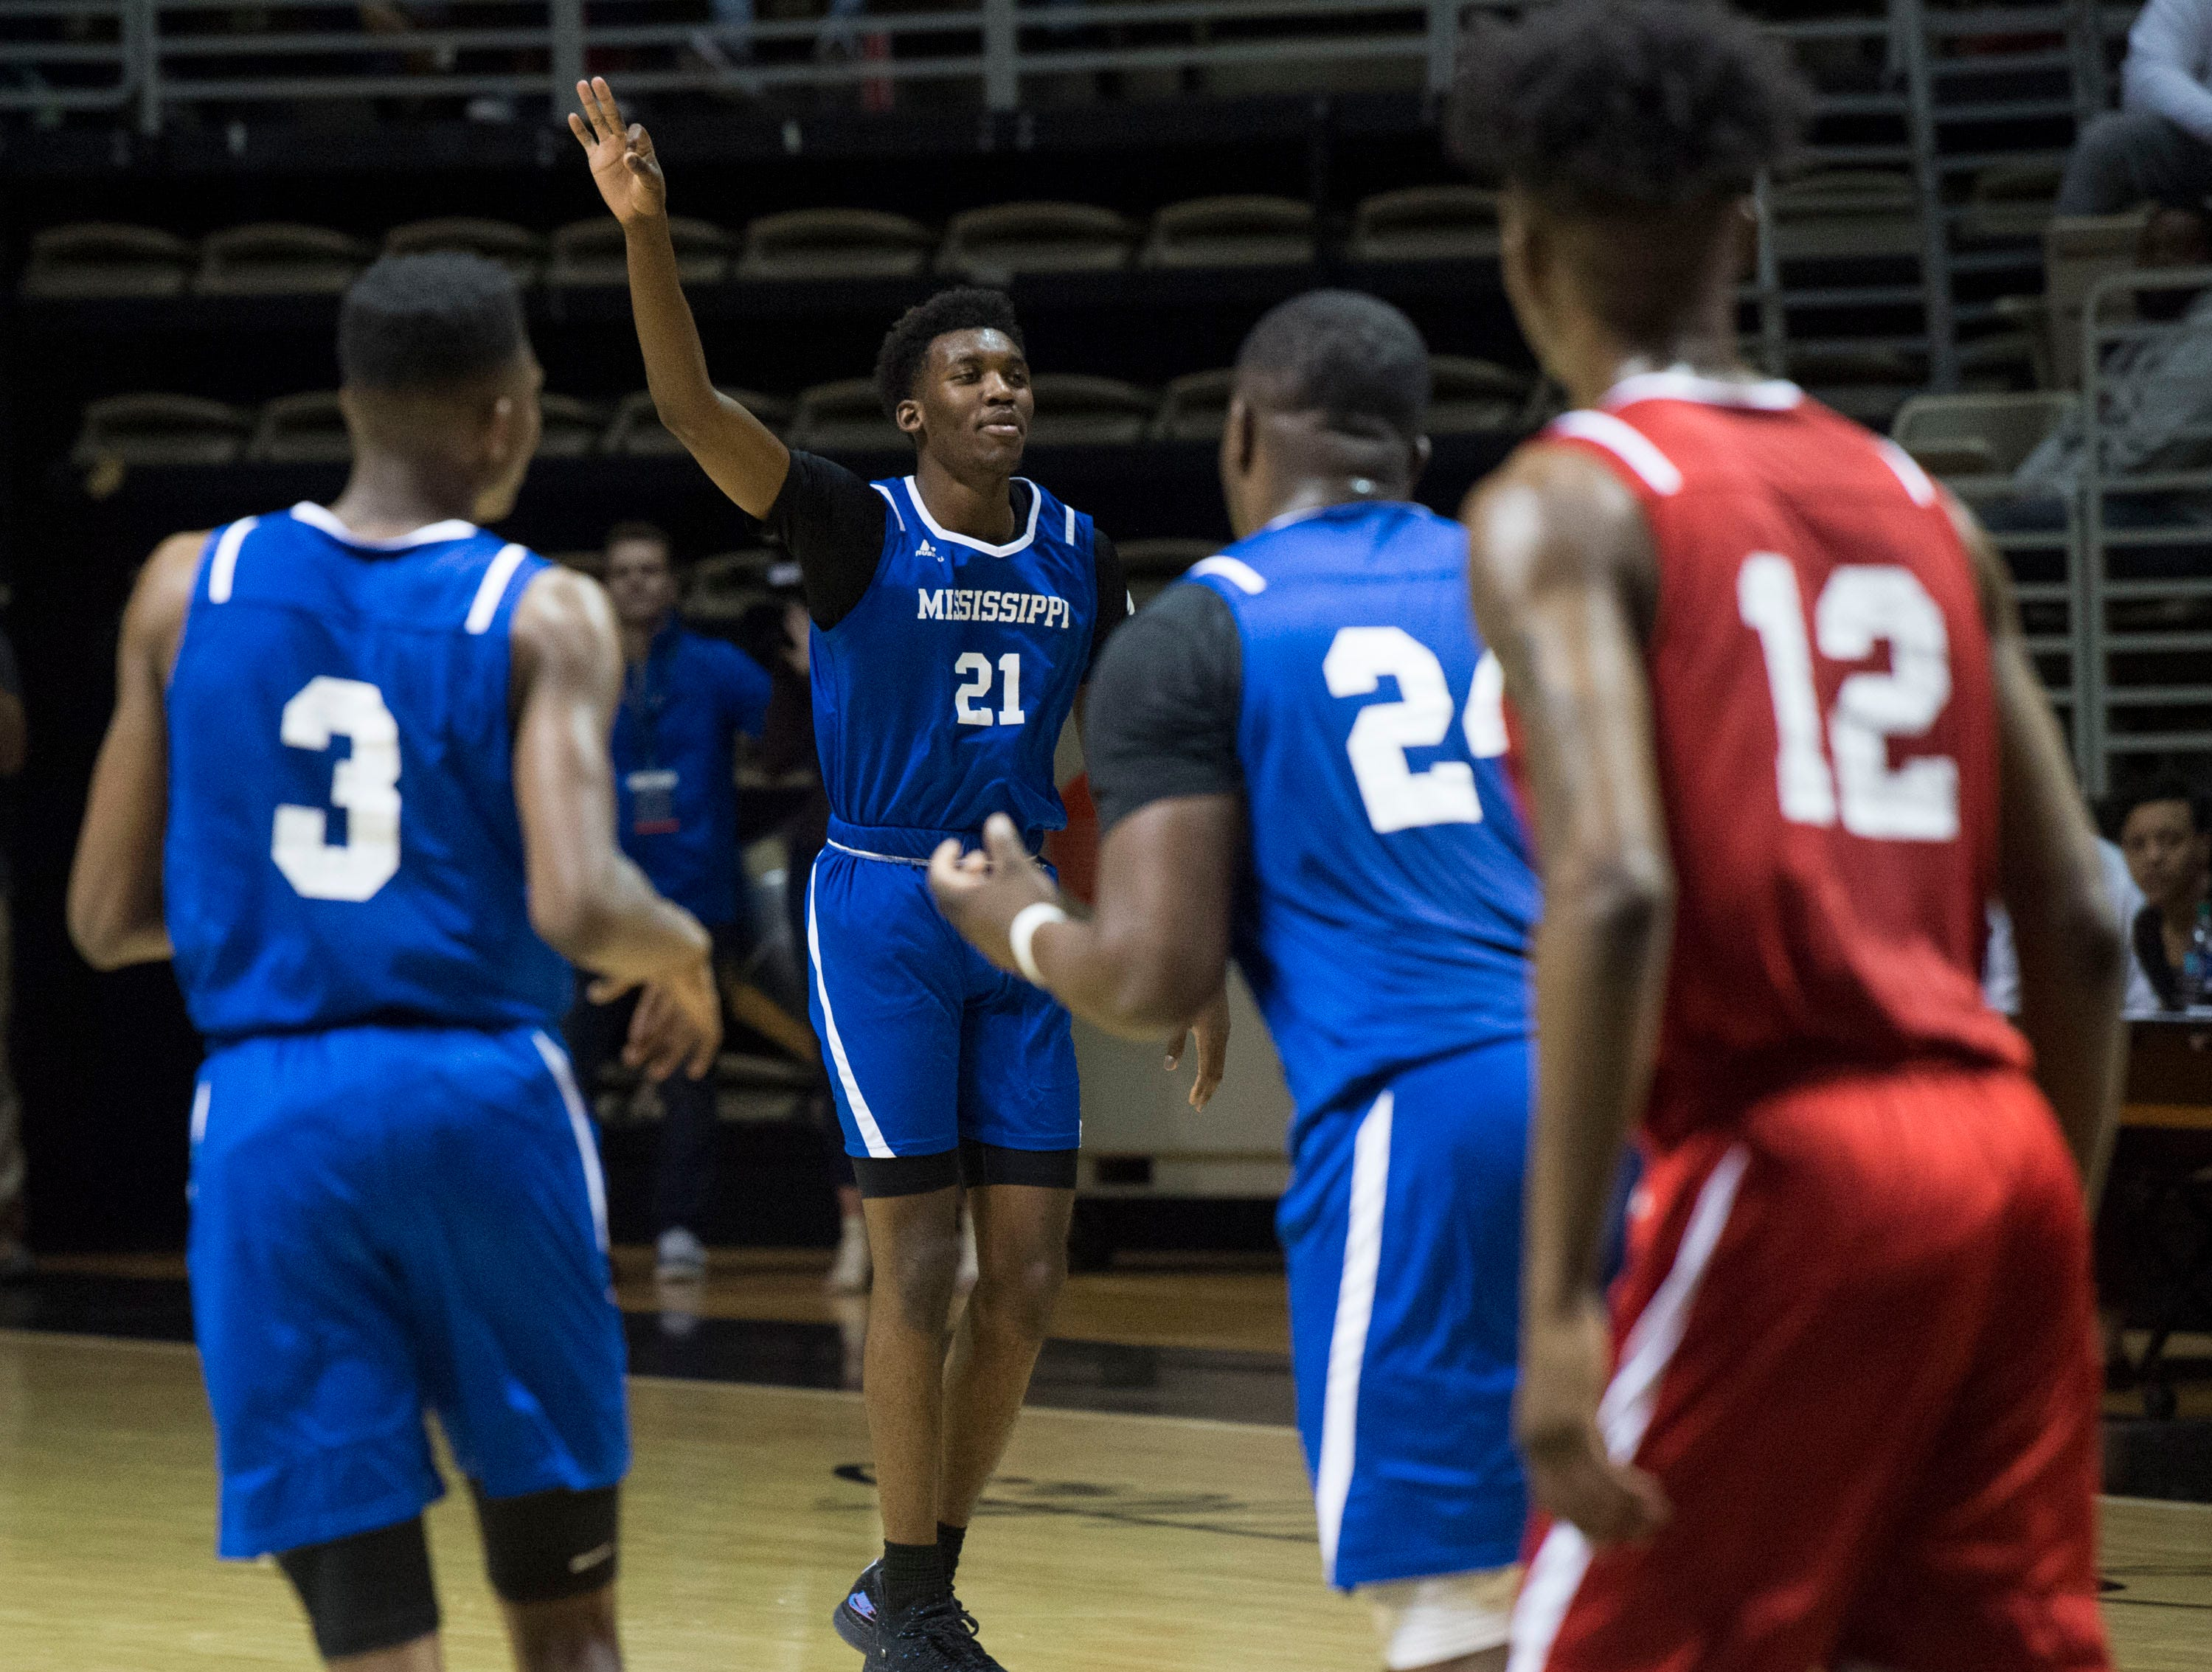 Mississippi's Jaylen Forbes (21) celebrates a three pointer during the Alabama-Mississippi All-Star game at the Dunn-Oliver Acadome in Montgomery, Ala., on Friday, March 15, 2019. Mississippi All-stars leads the Alabama All-stars 47-39 at halftime.